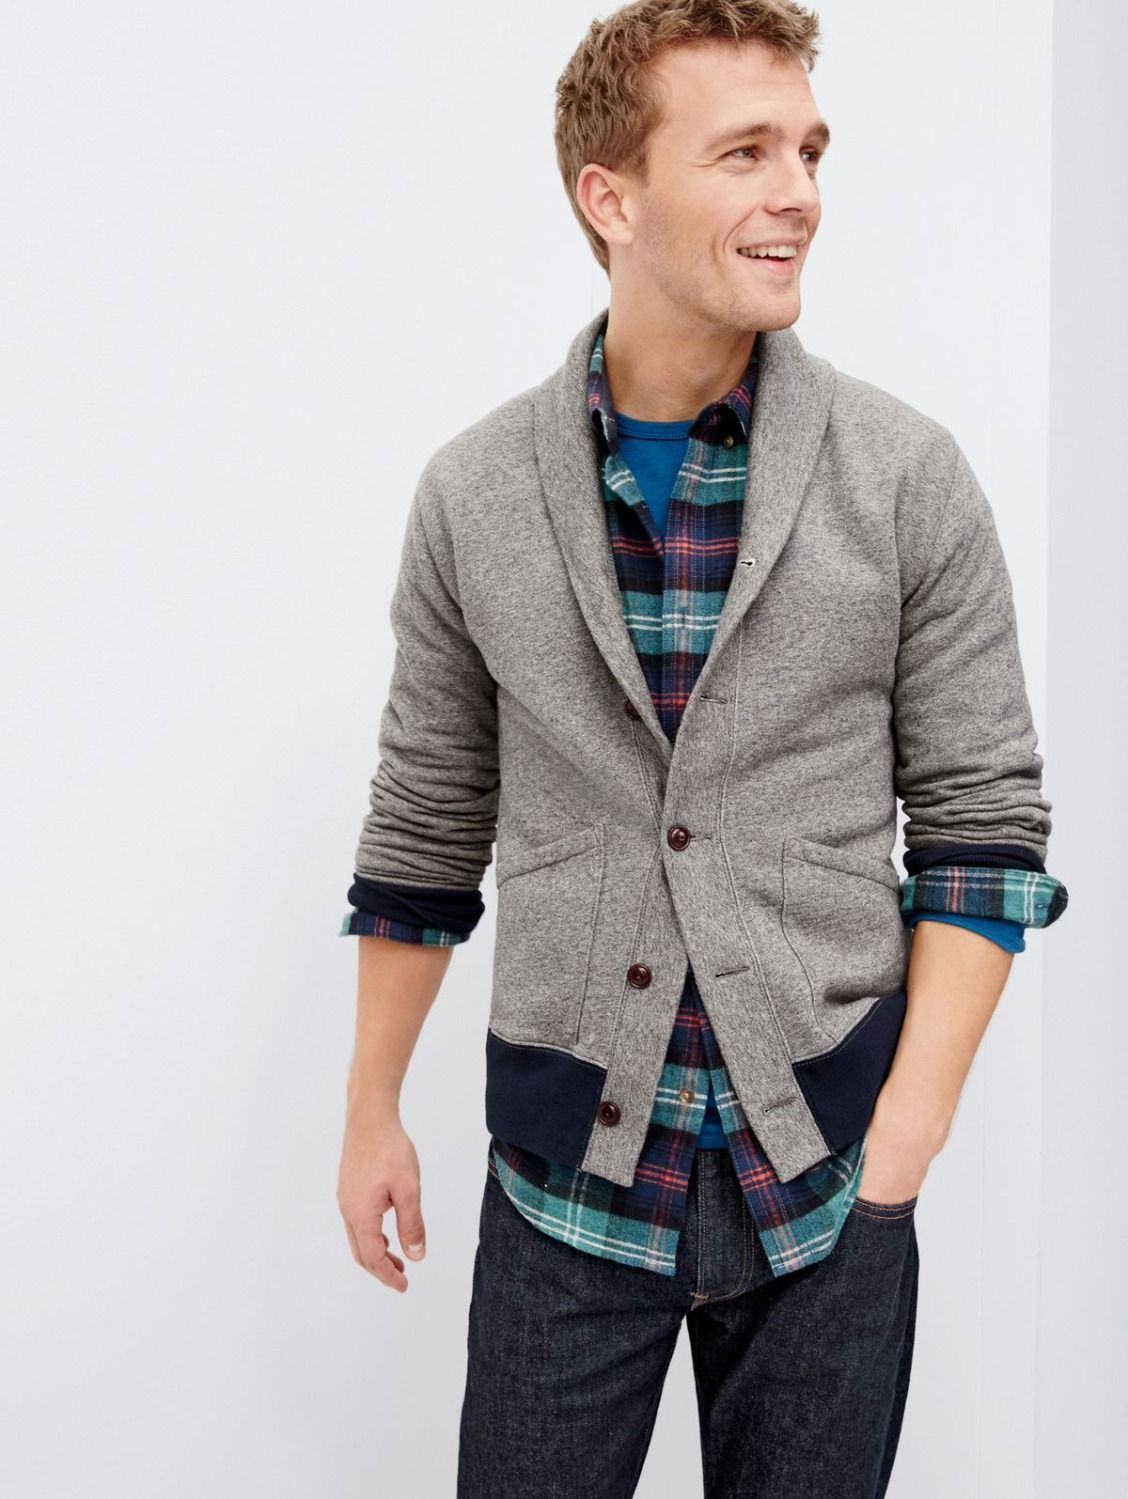 On our radar. The J.Crew men's modern cardigan. Athletic-inspired ...